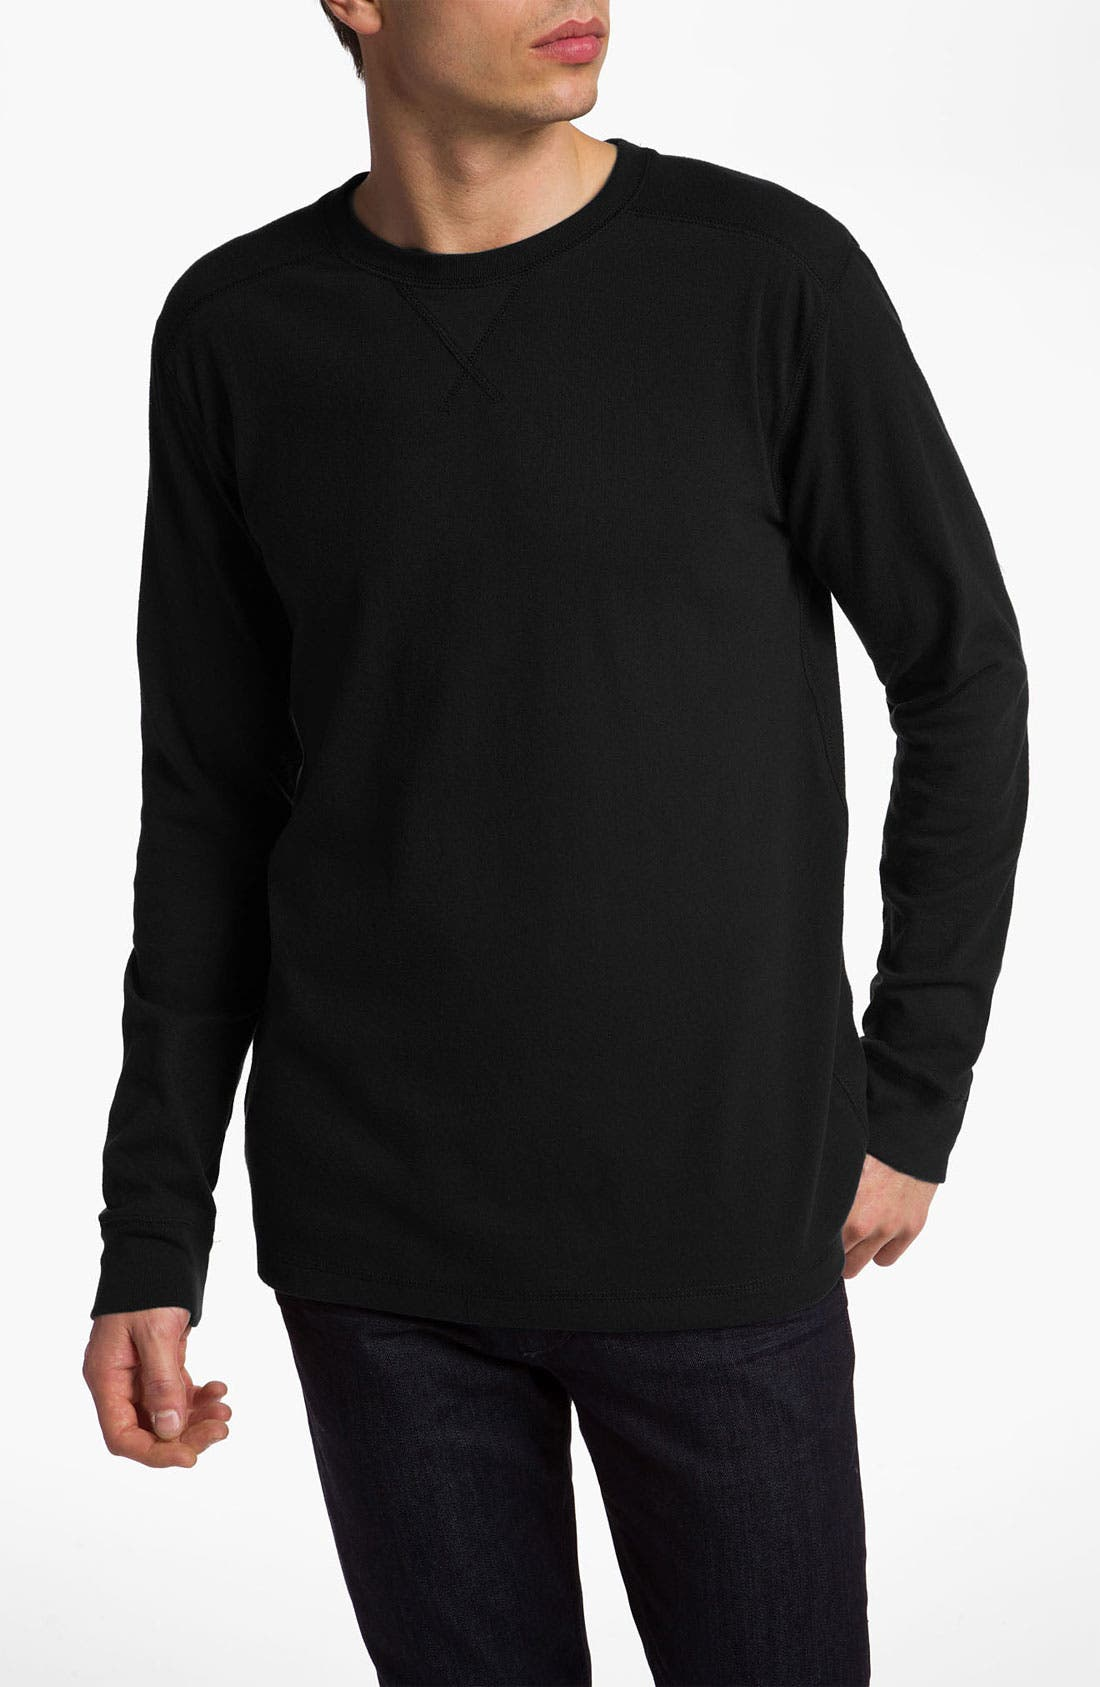 Alternate Image 1 Selected - Quiksilver 'Snit' Long Sleeve Thermal T-Shirt